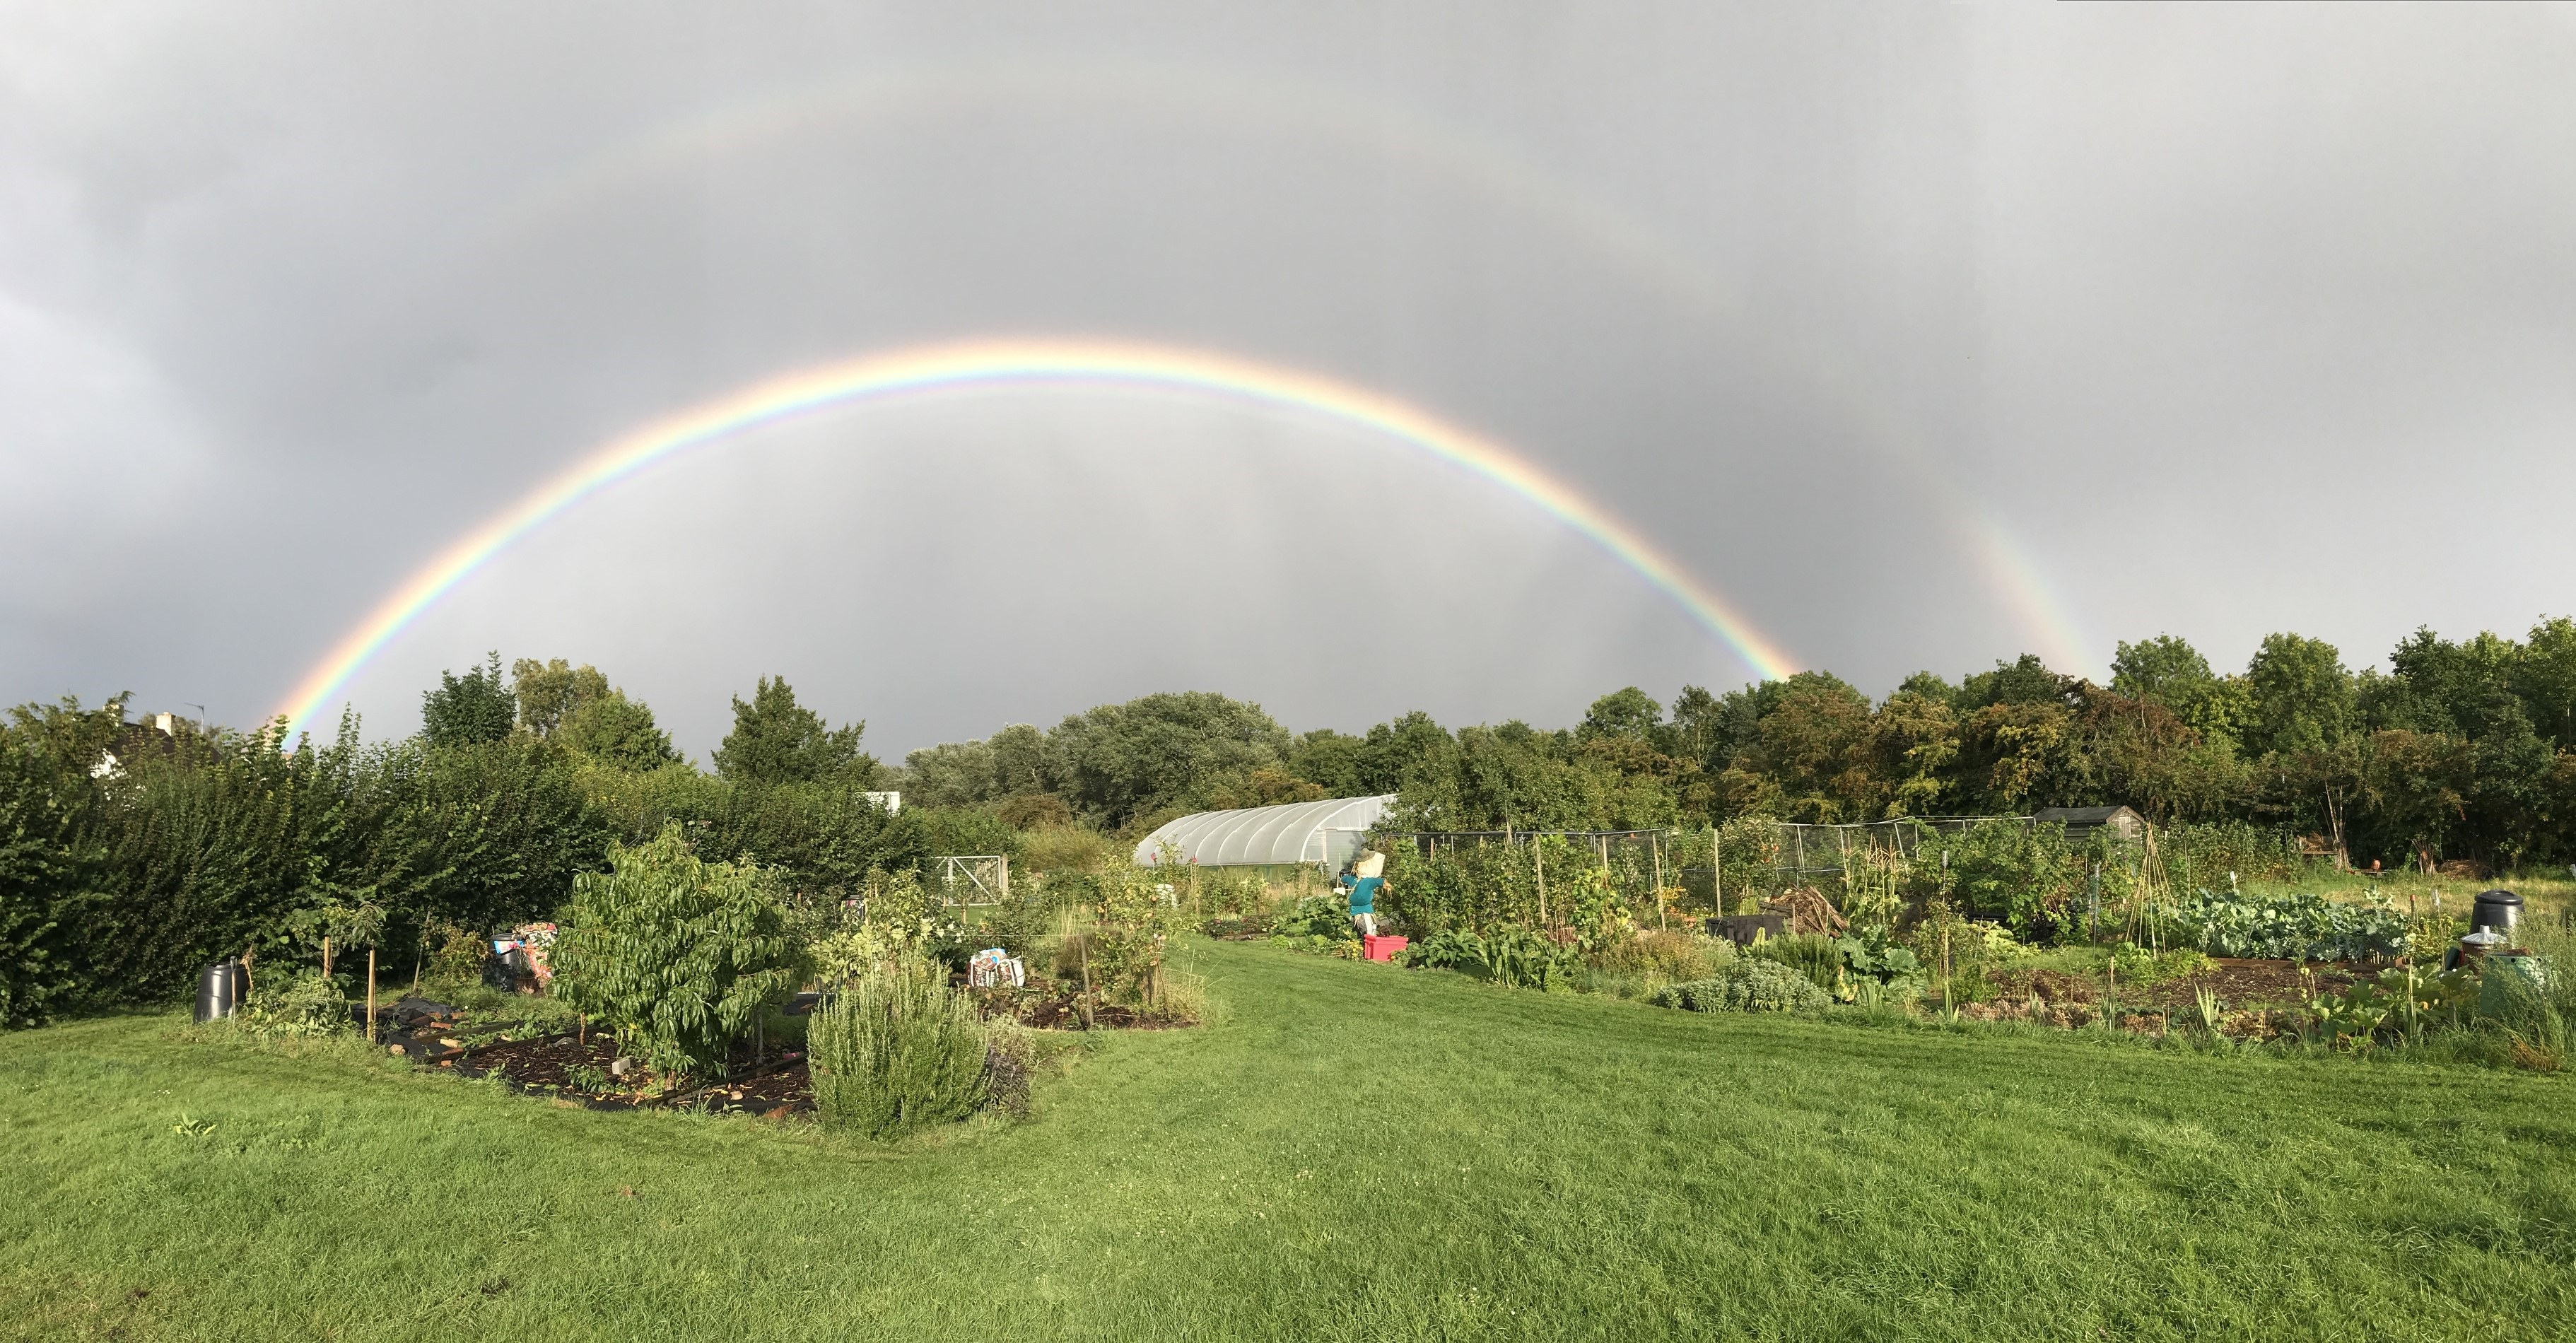 <h2>Grow your own food</h2><div class='slide-content'><p>Join our community of gardeners in a beautiful setting<span class='highlight'></span></p></div><a href='/outside-veg-plots/' class='btn' title='Read more'>Read more</a>